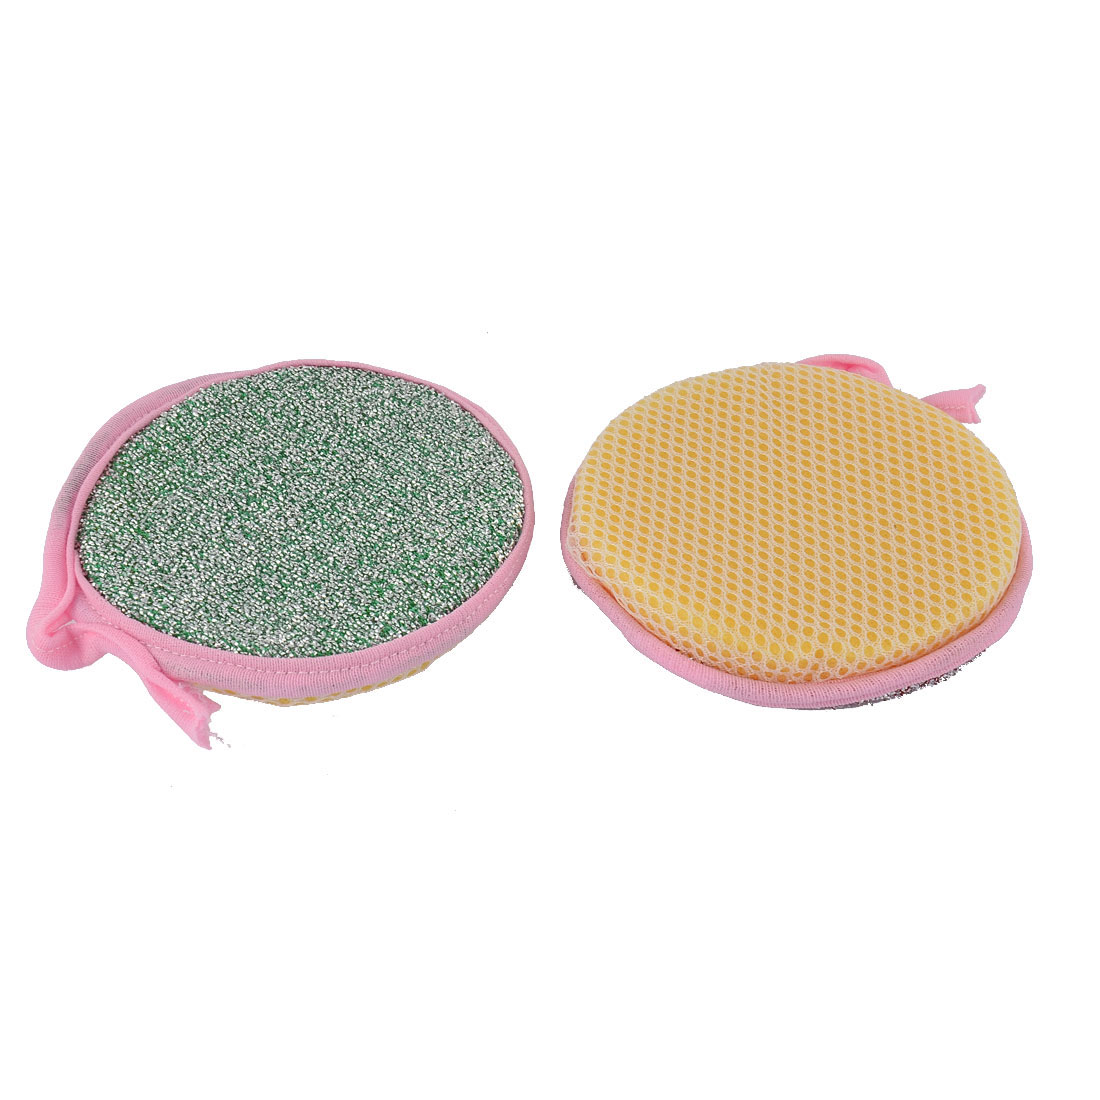 Kitchenware Tableware Round Bowl Plate Duster Cleaning Cloth Scrub Sponge 2pcs